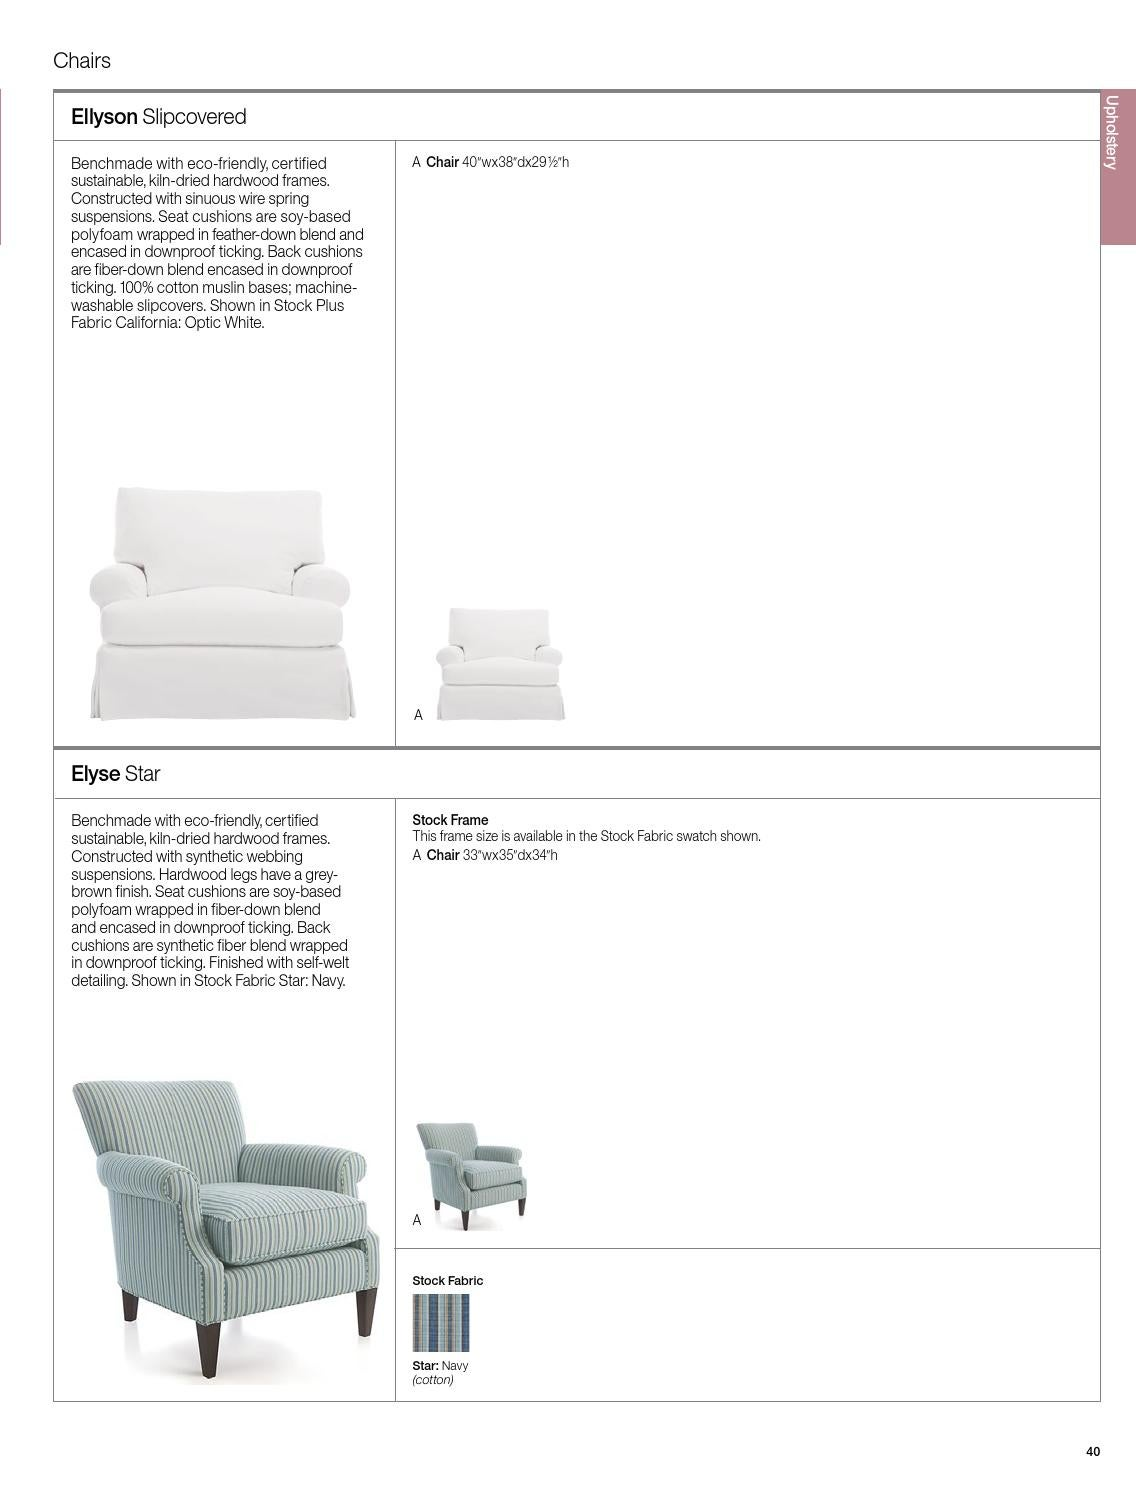 Furniture Resource Guide Spring Summer 2016 by Crate and Barrel ...